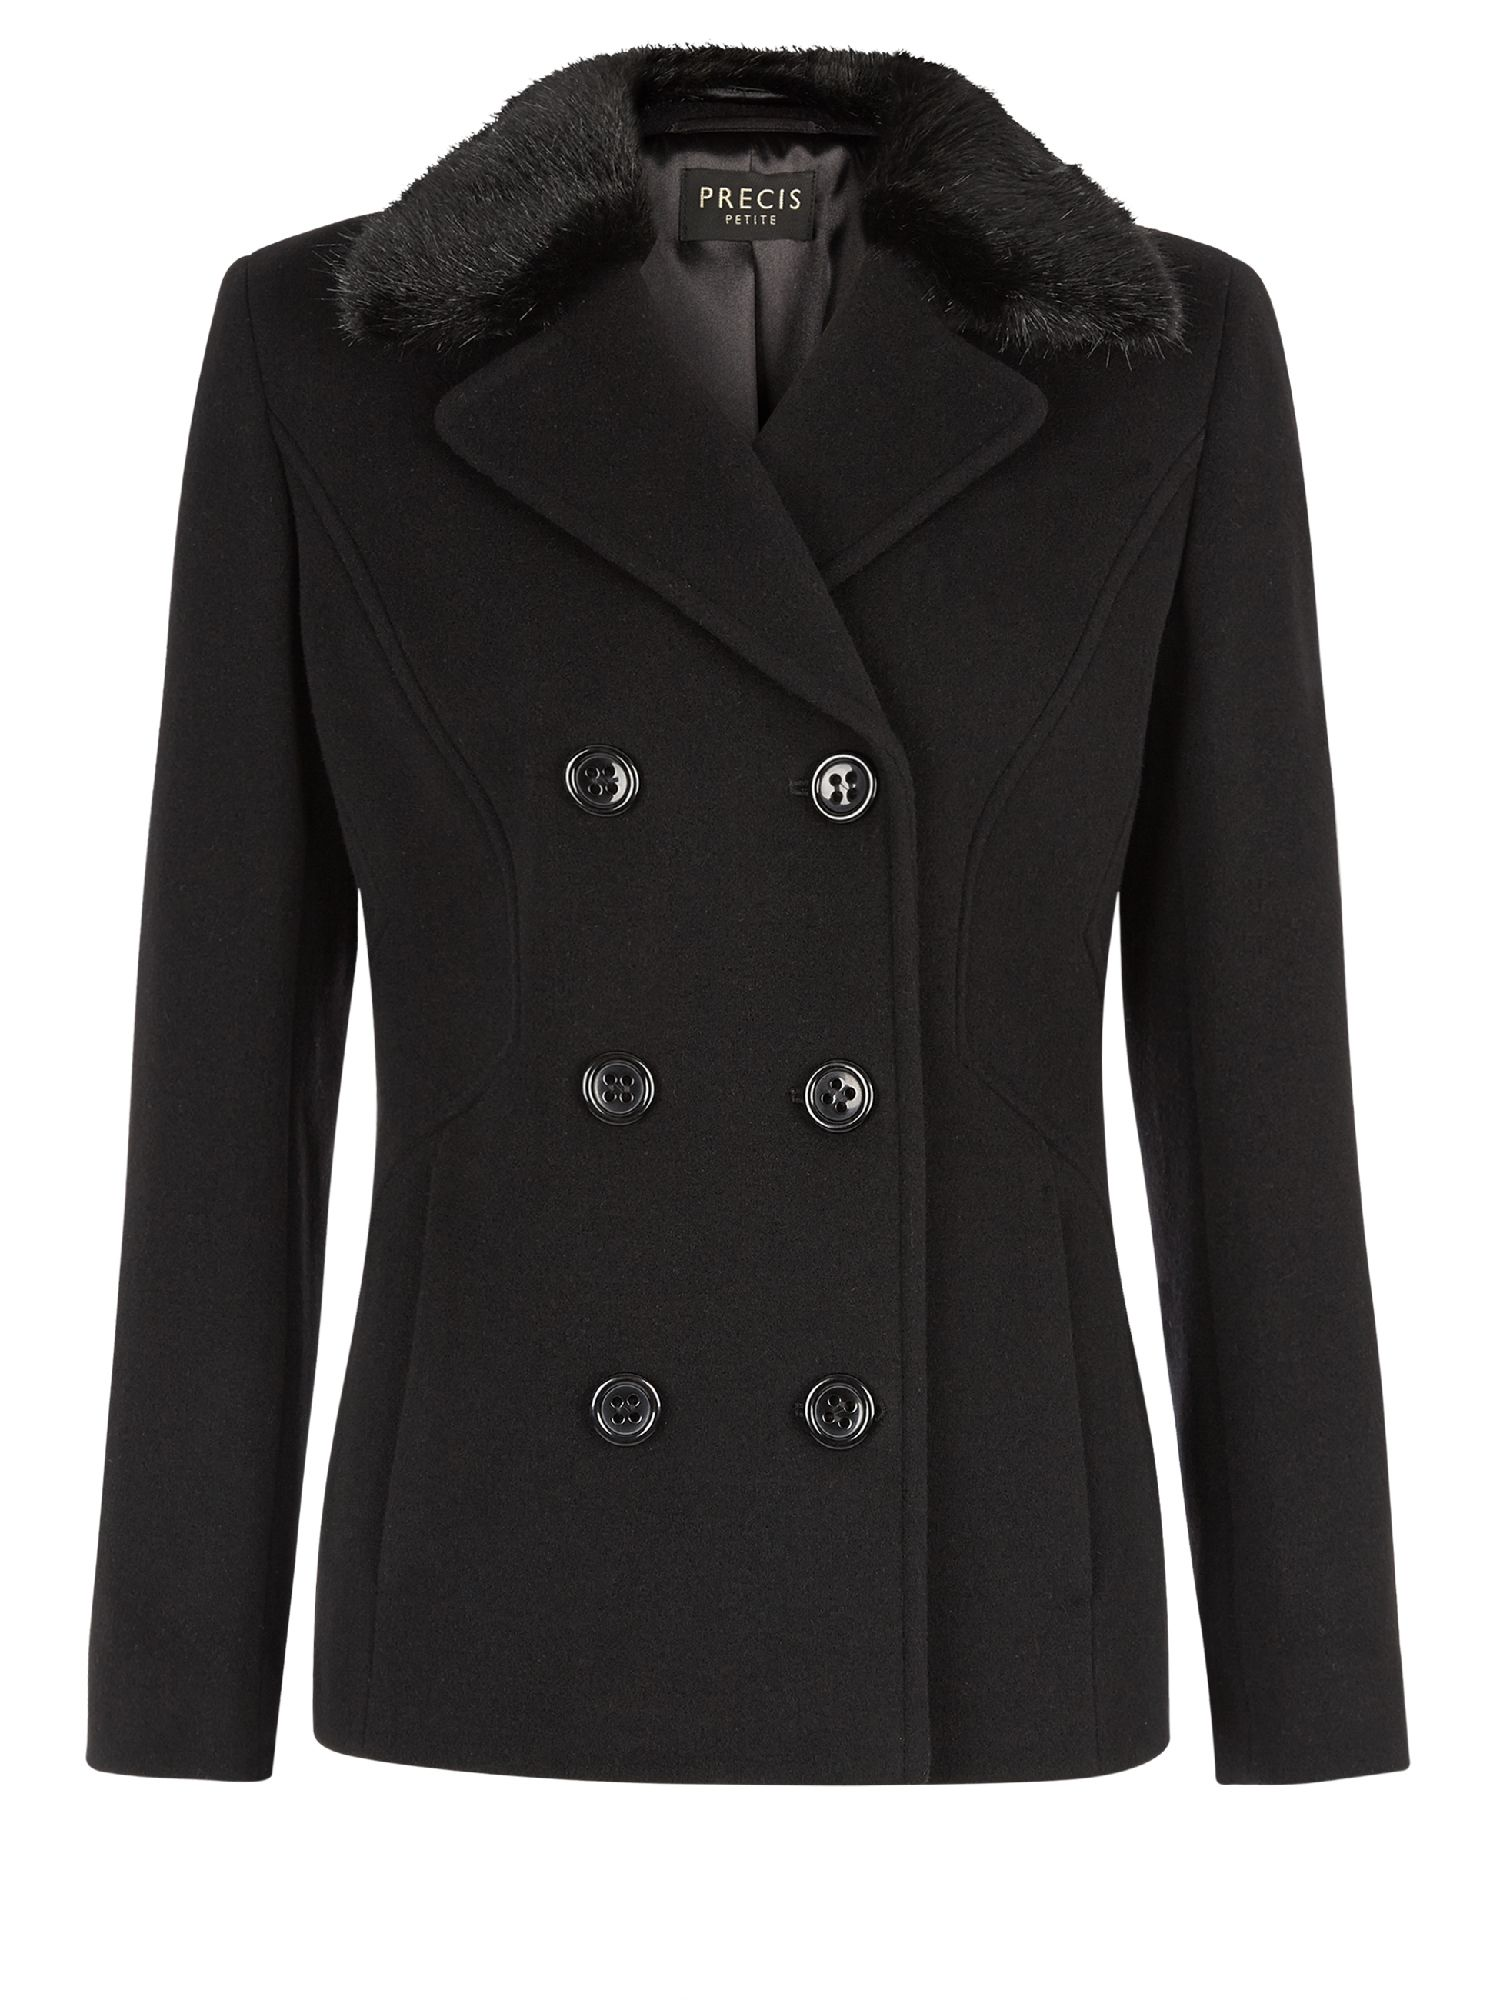 Classic Wool Peacoat: An American icon is back and better than ever in our plush wool blend!Classic double-breasted styling with back-tab detail for a touch of shape and a flattering longer length. Front welt pockets (sewn closed like all finely tailored garments).